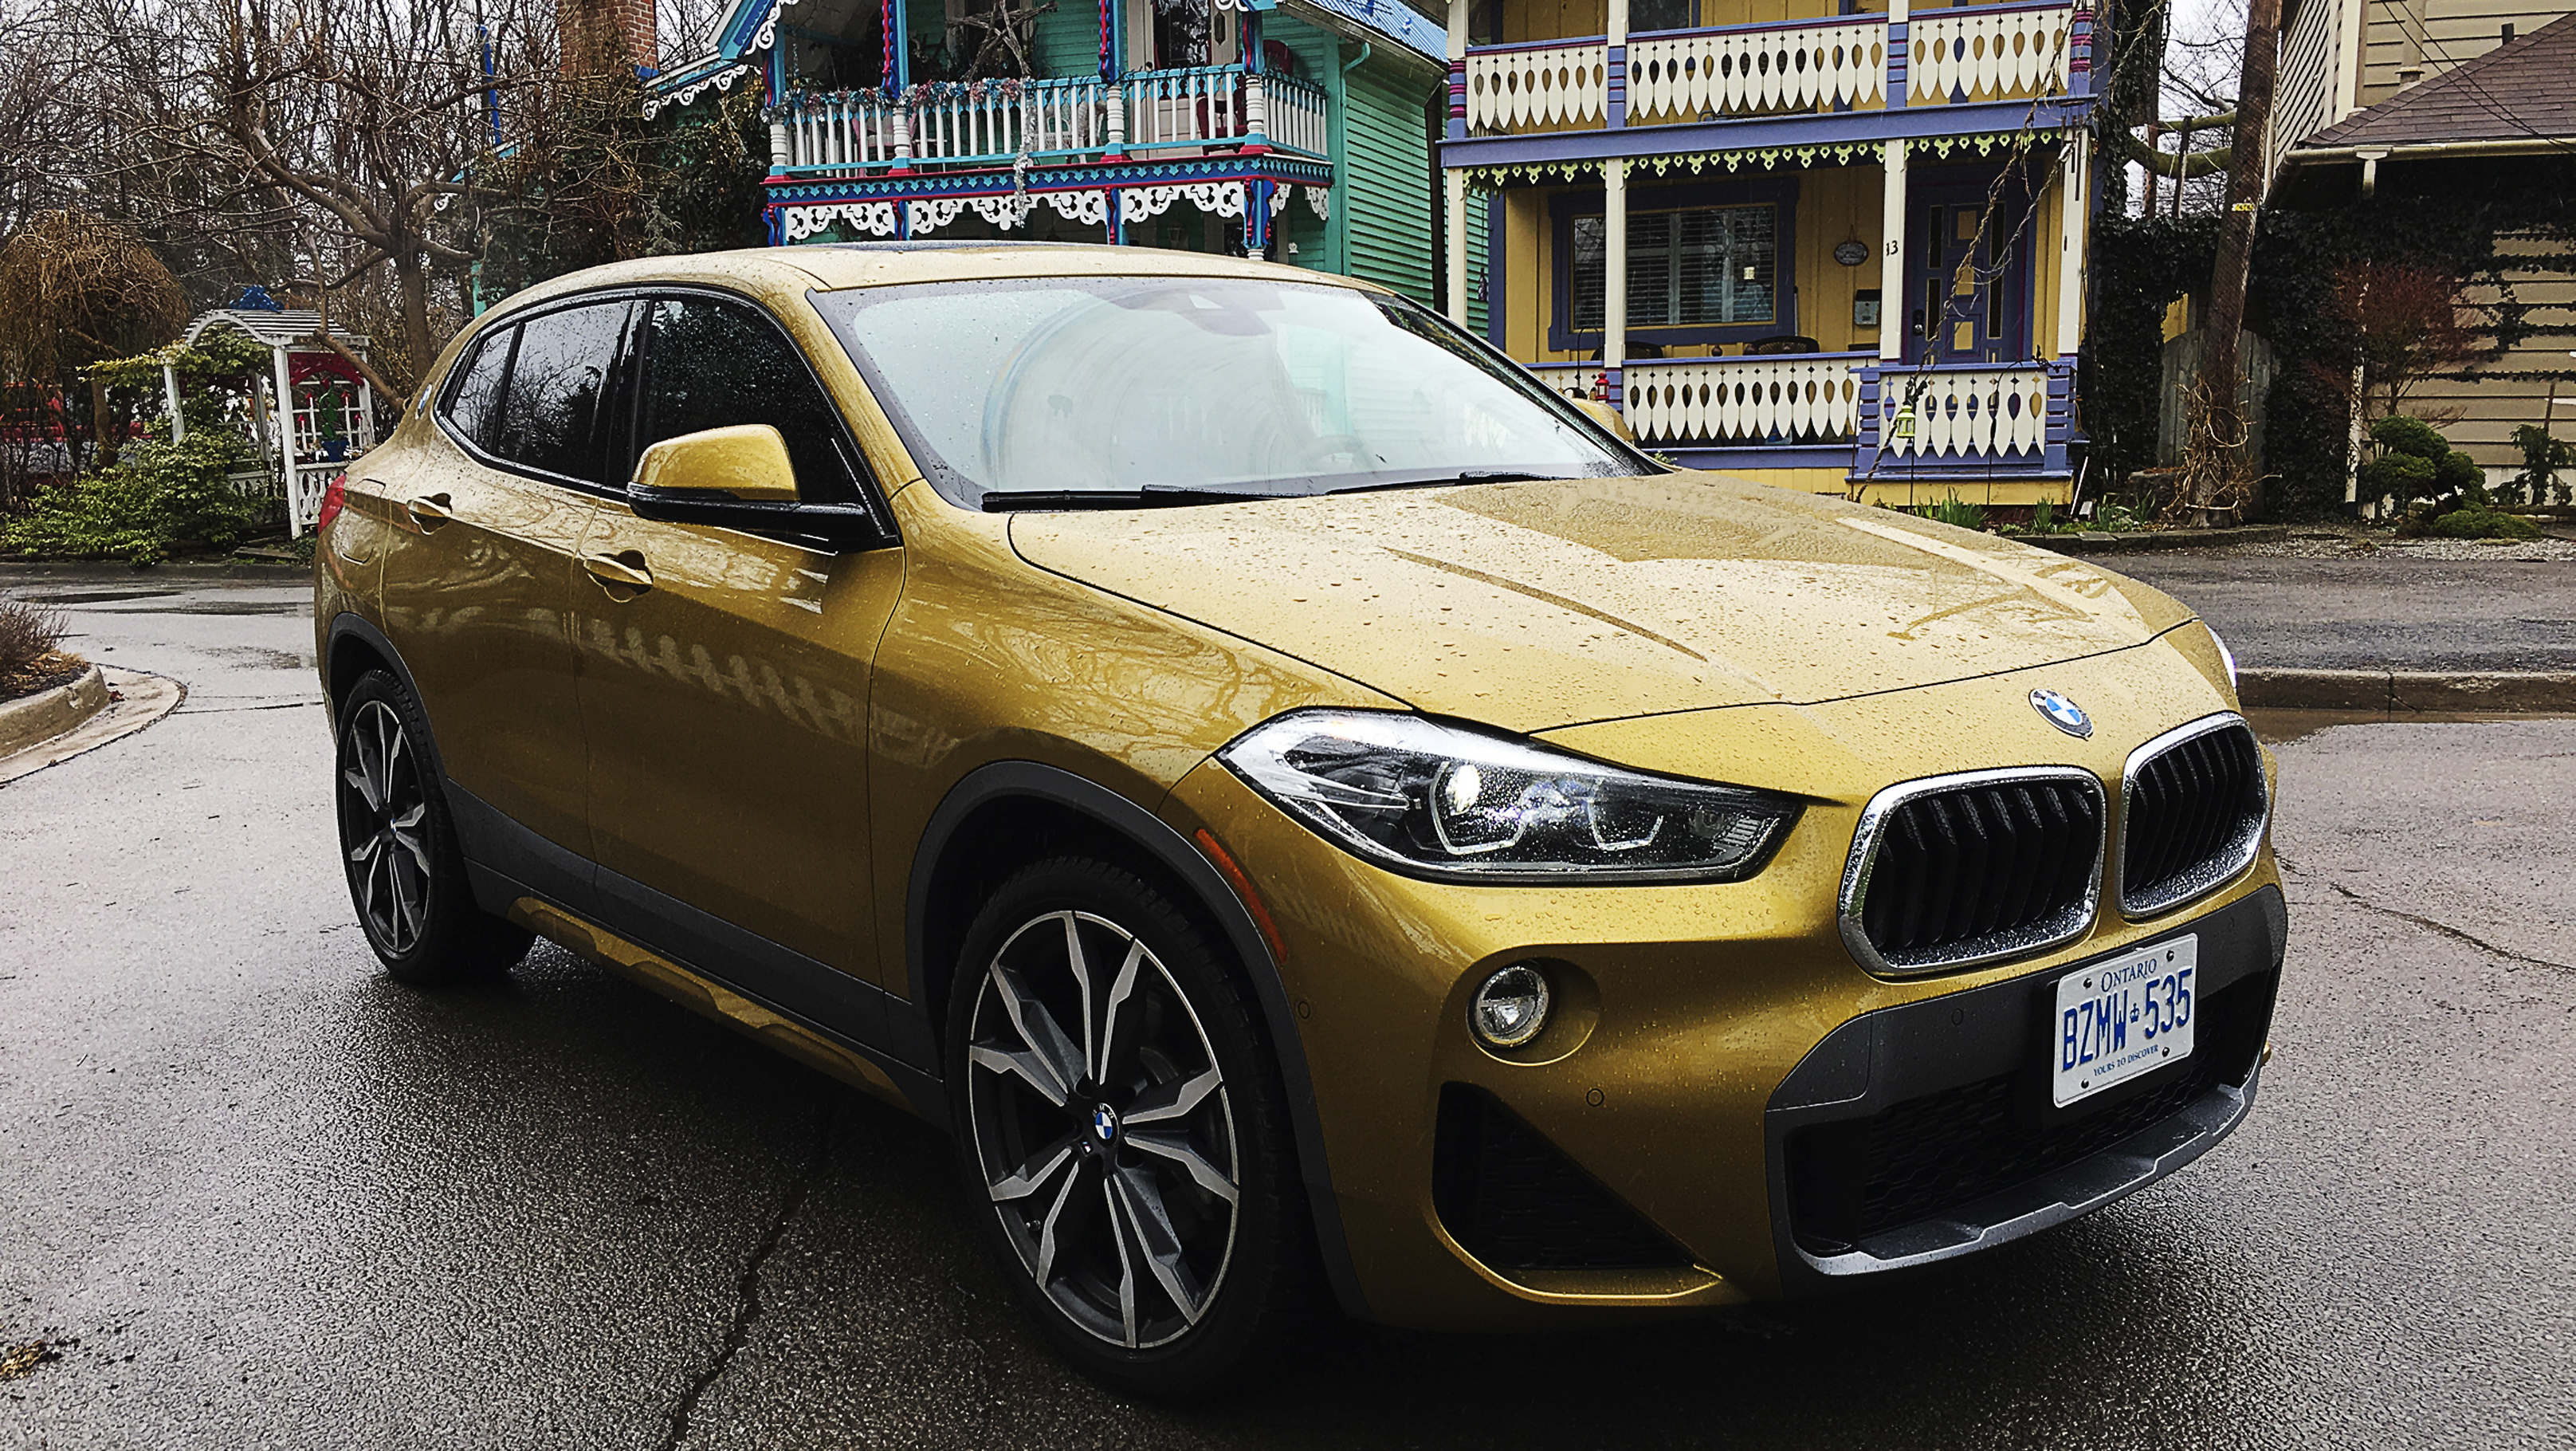 Road Trip 2018 BMW X2 to Niagara